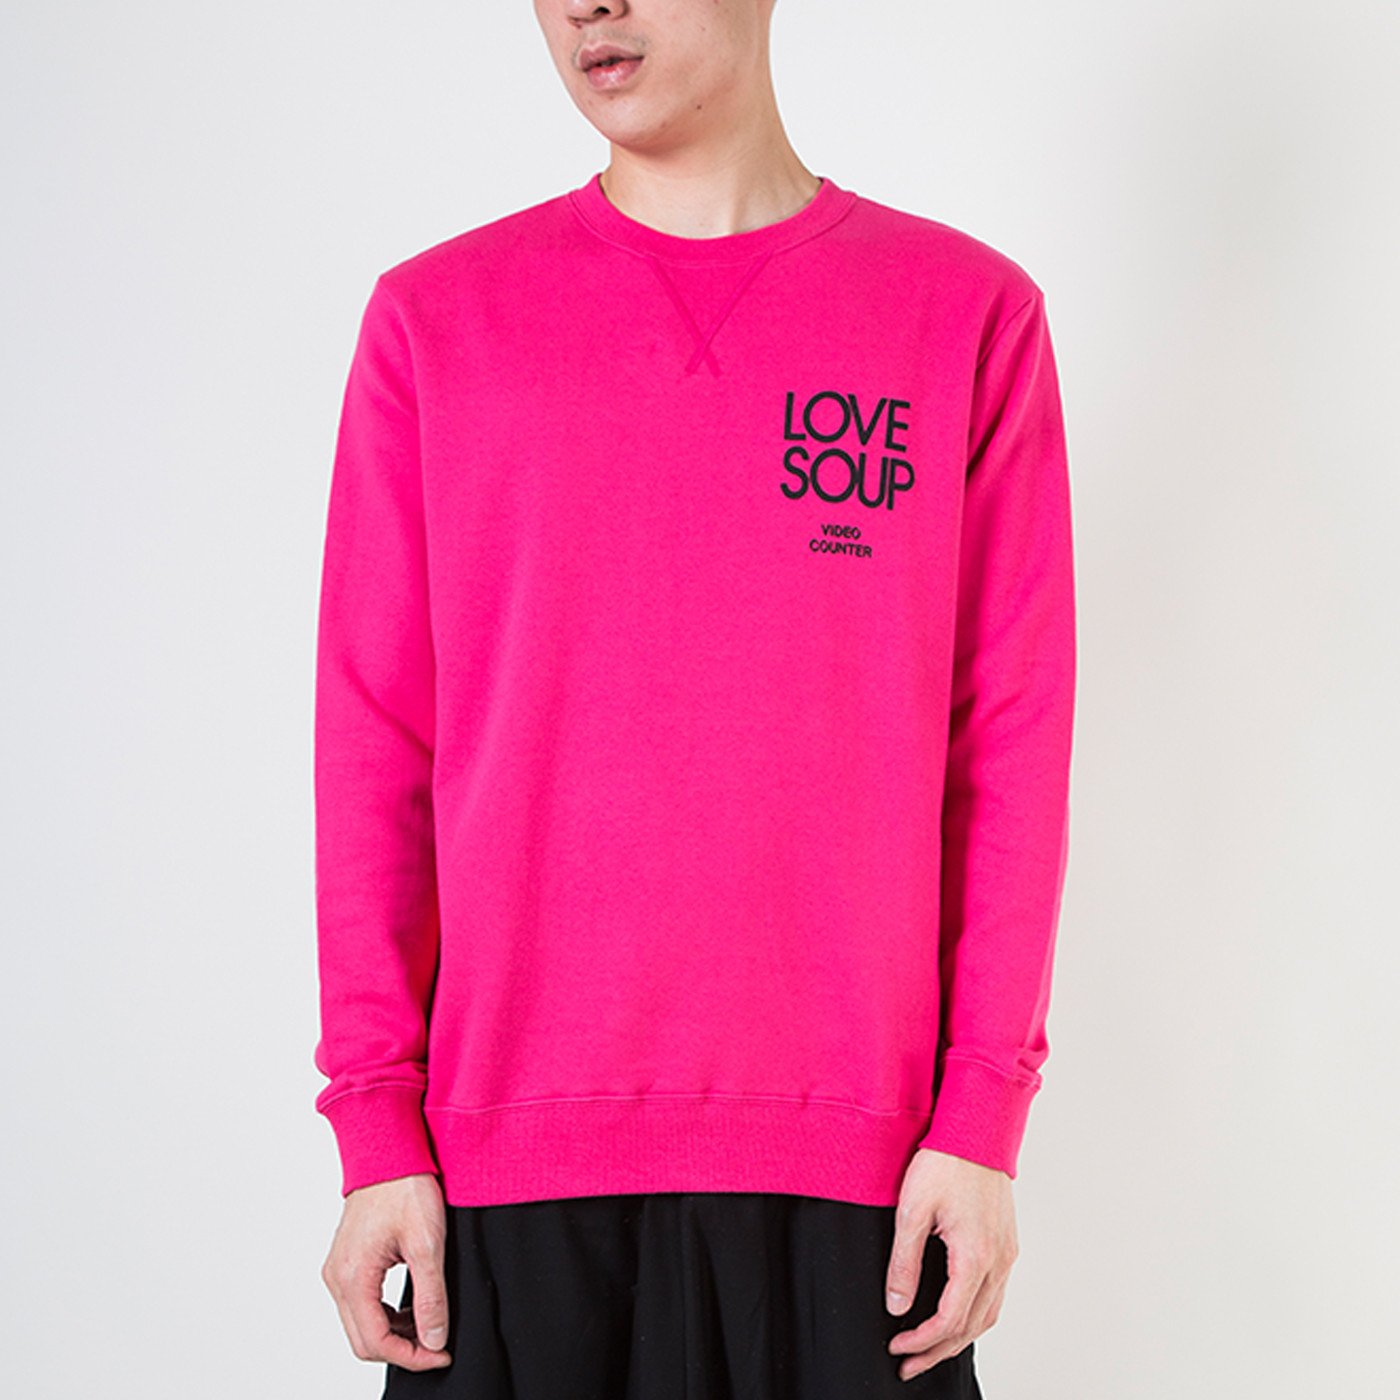 CREW SWEAT (LOVE SOUP) PINK